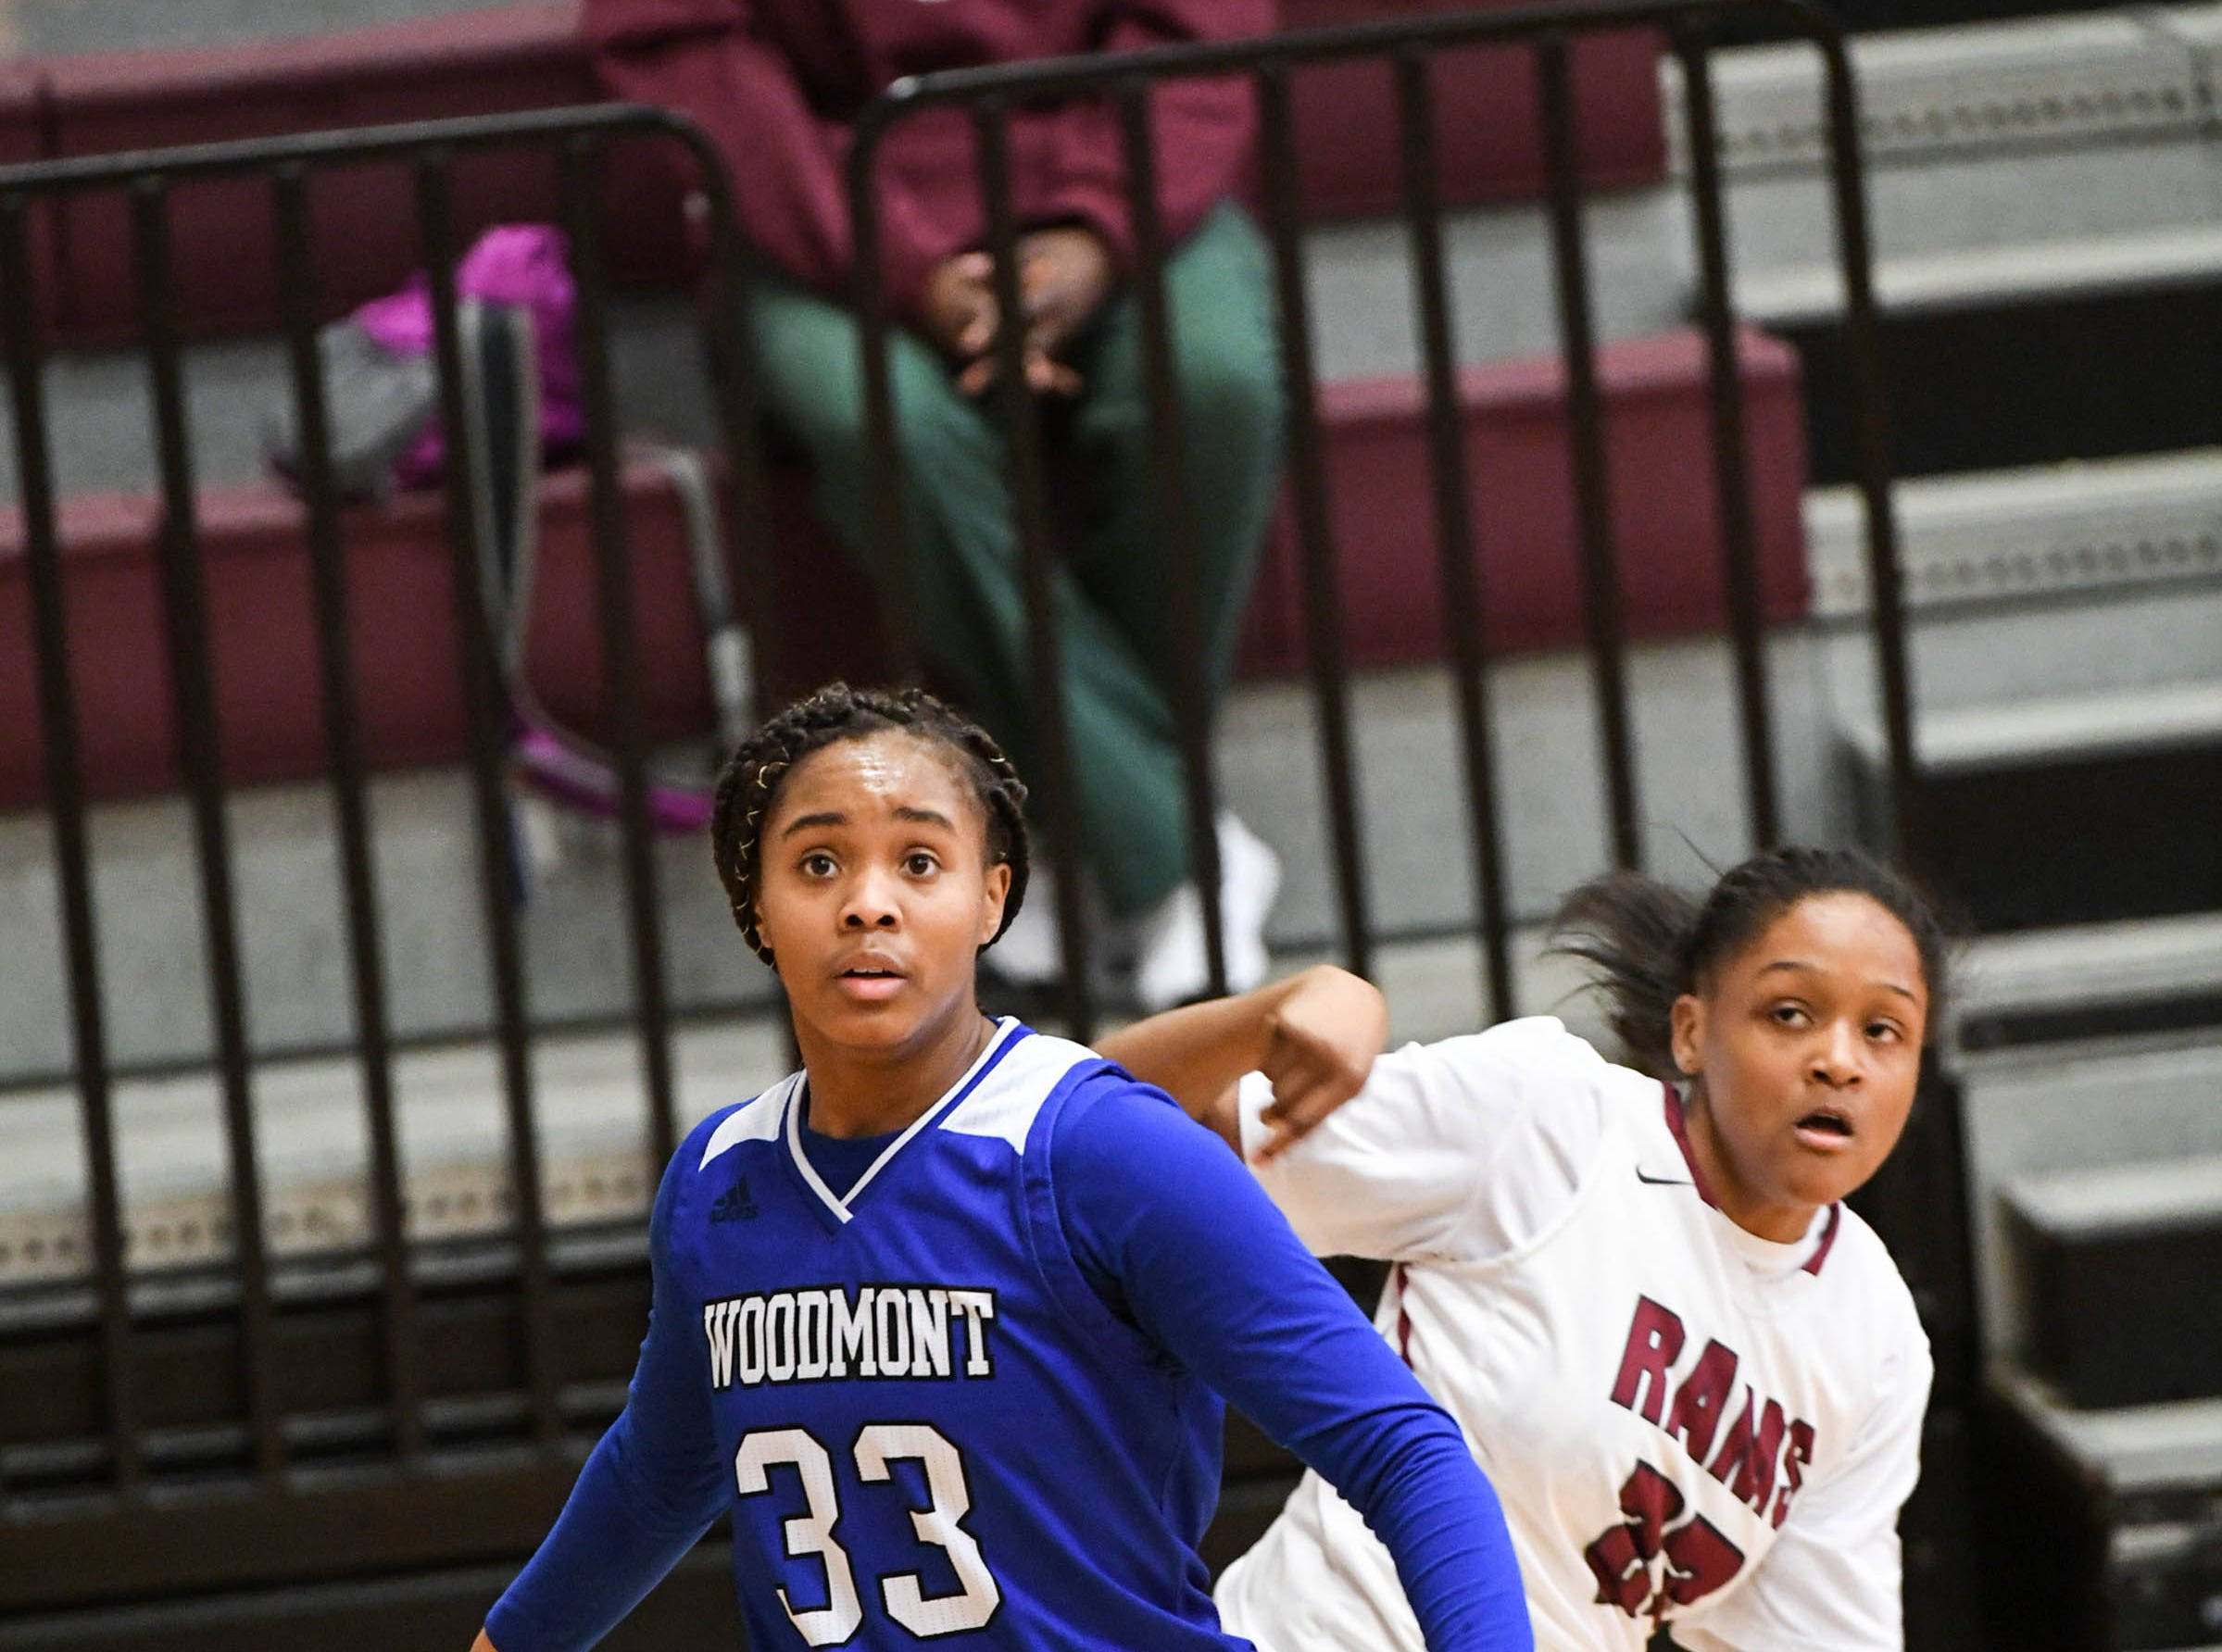 Westside freshman Keazia Hatten(23) watches her three-point shot go in near Woodmont senior Kitara Henry(33) during the first quarter at Westside High School in Anderson on Tuesday.